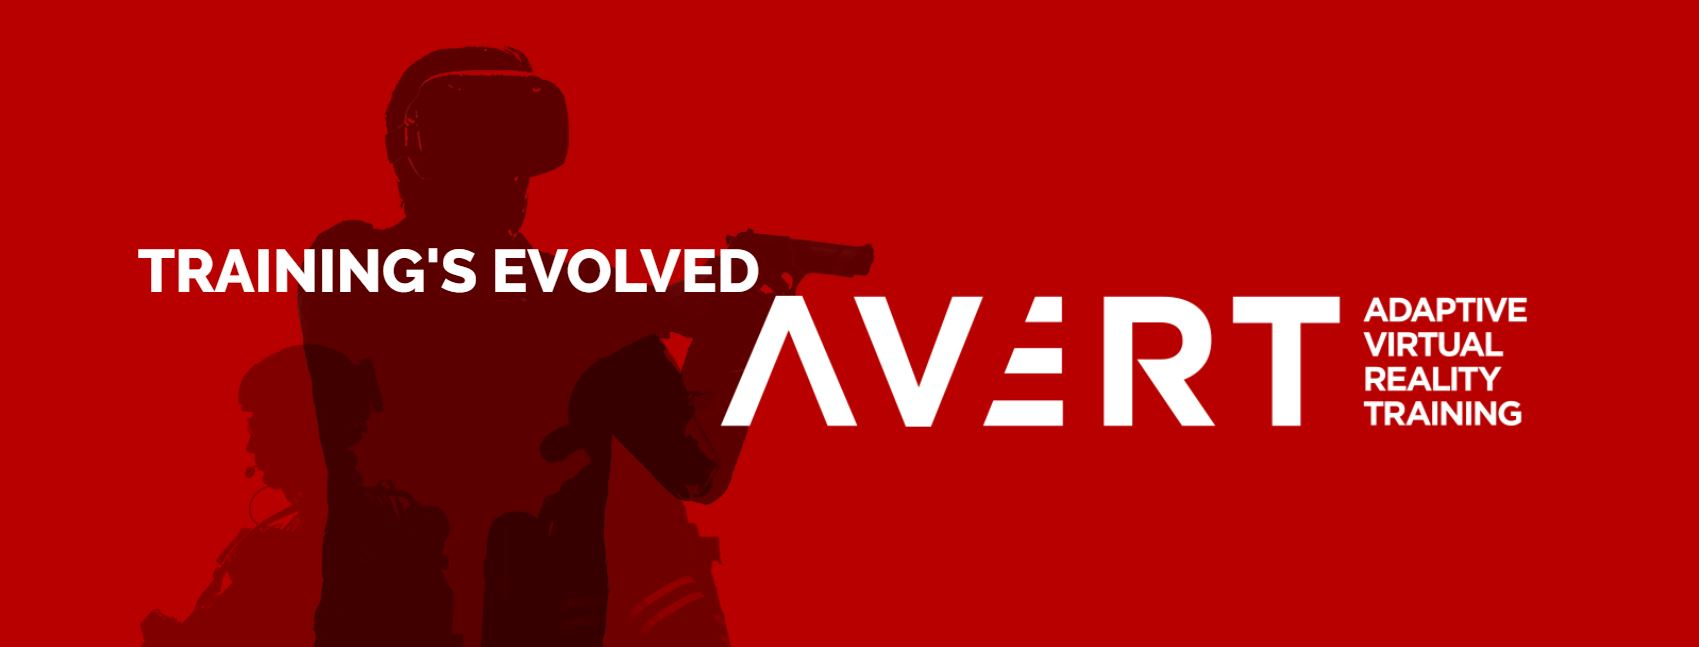 Vyxl designs for VR: AVERT